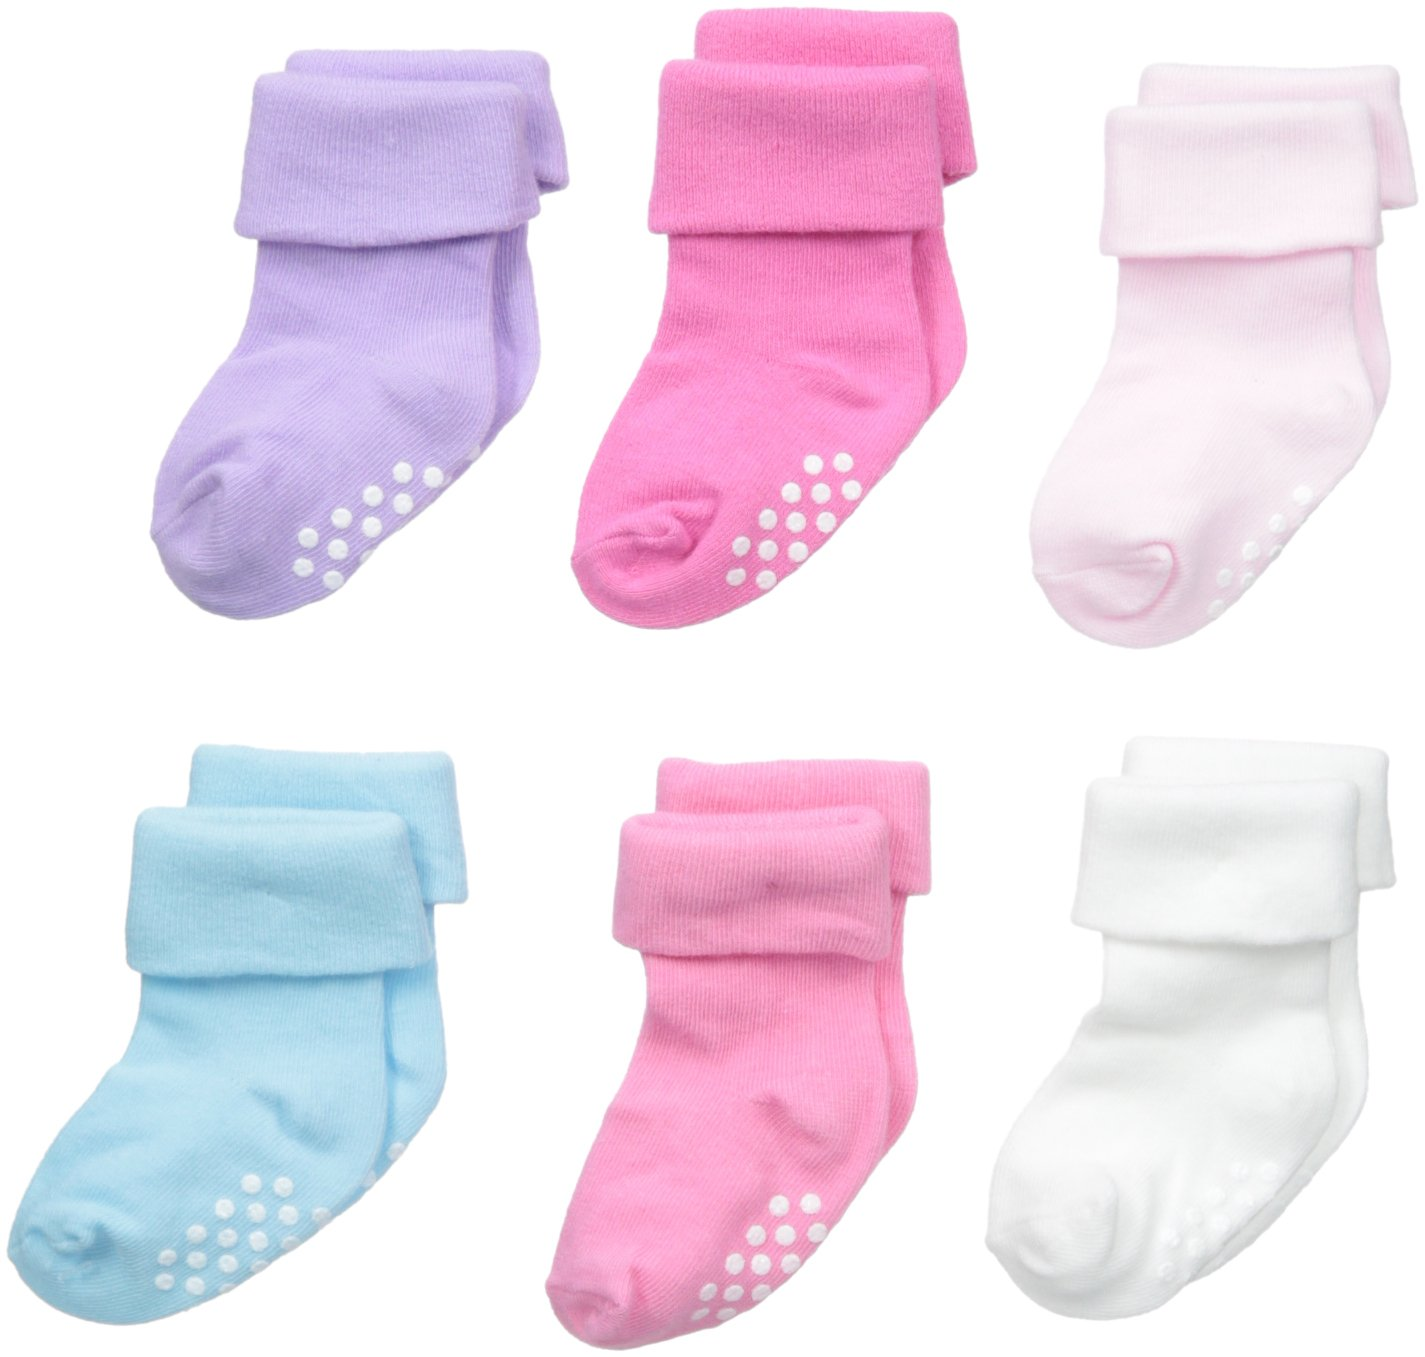 Jefferies Socks Unisex-Baby Non-Skid Turn Cuff 6 Pair Pack, Girl Multi, Toddler